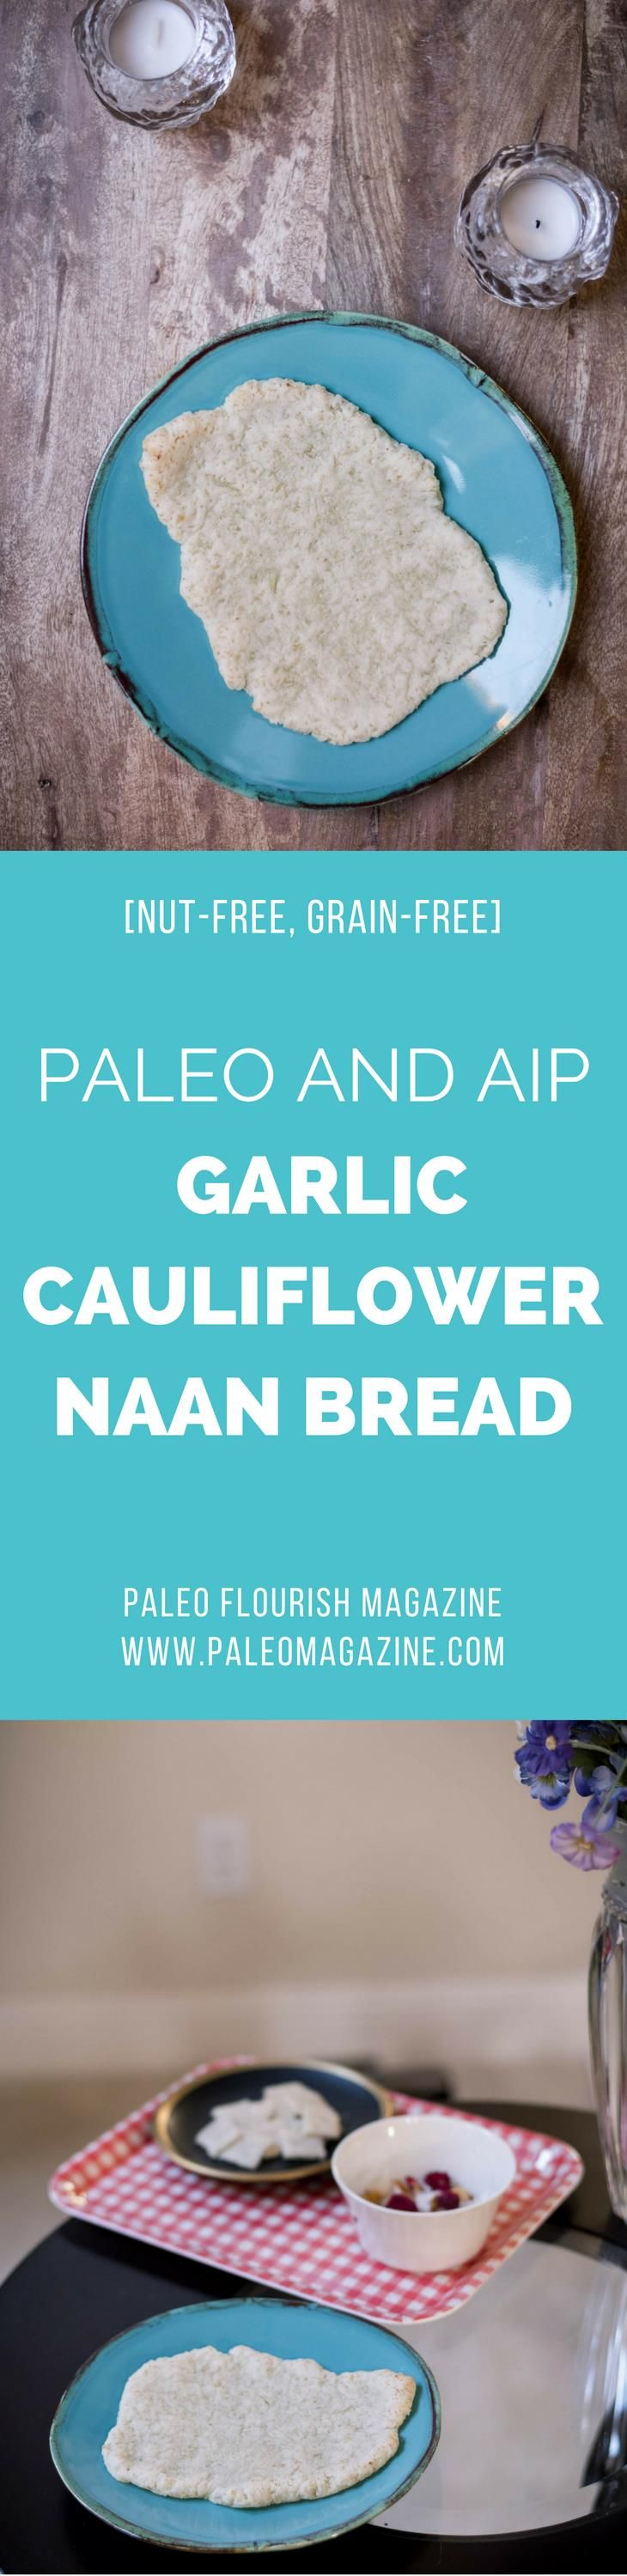 Paleo AIP Garlic Cauliflower Naan Bread #NutFree #GrainFree